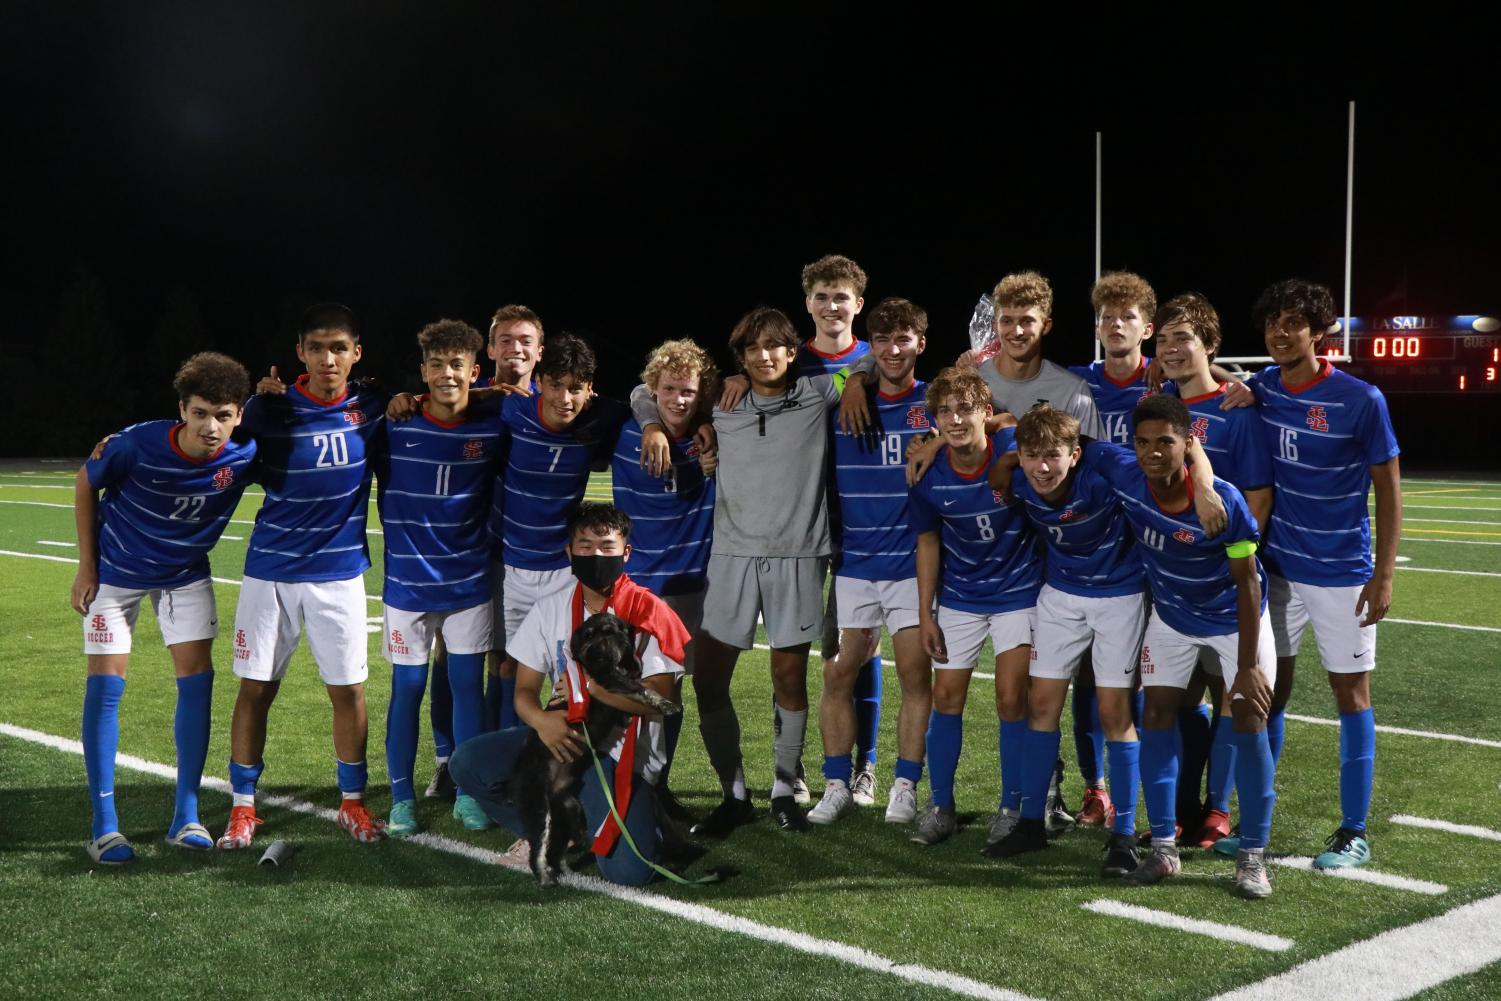 Boys+Varsity+Soccer+Defeats+Corvallis+4%E2%80%931+and+Remains+Undefeated